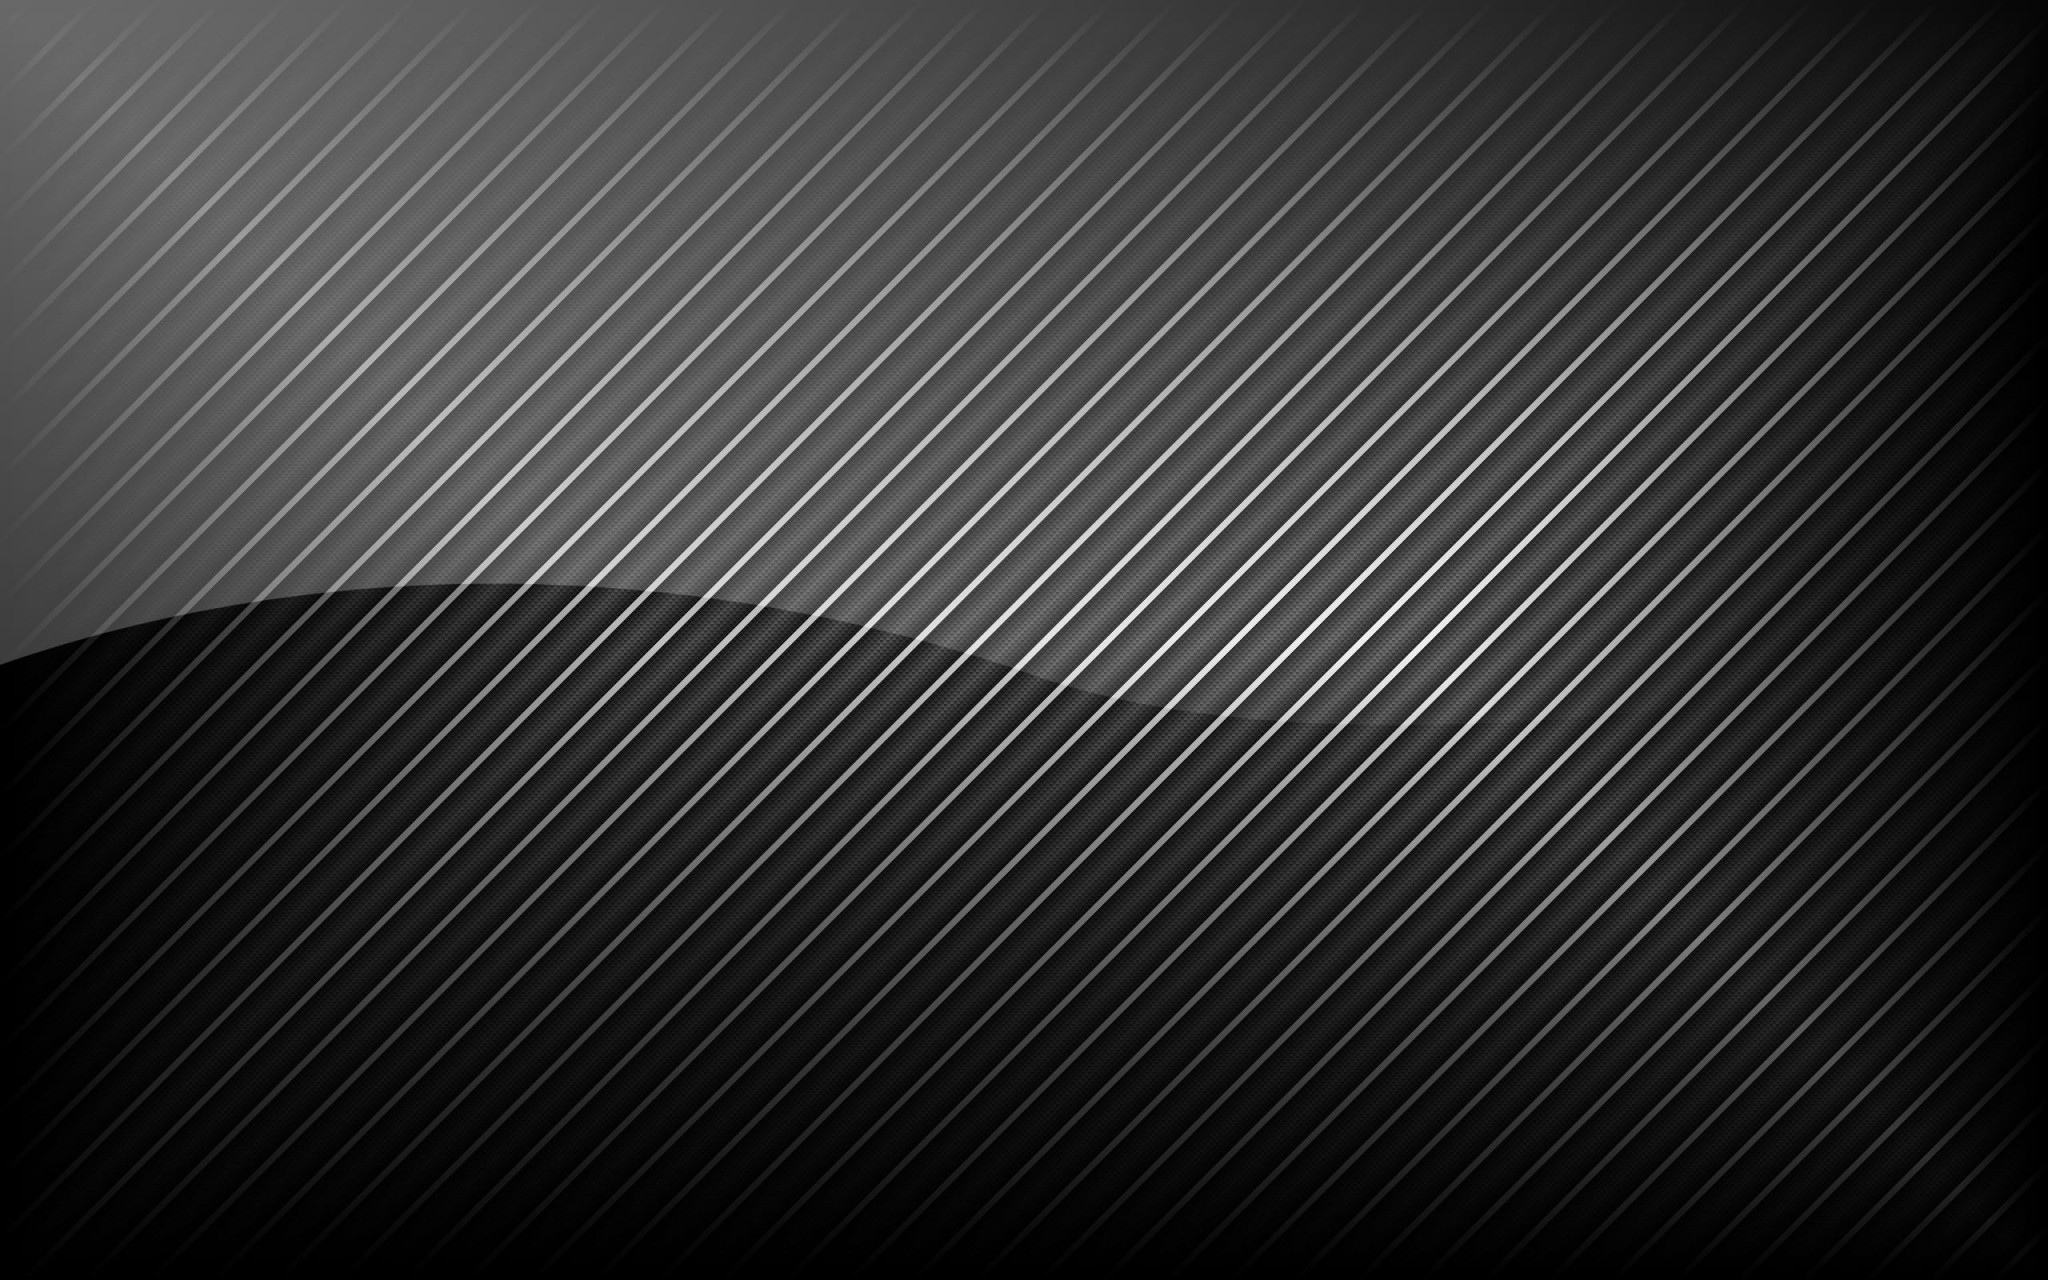 carbon fiber computer backgrounds wallpaper